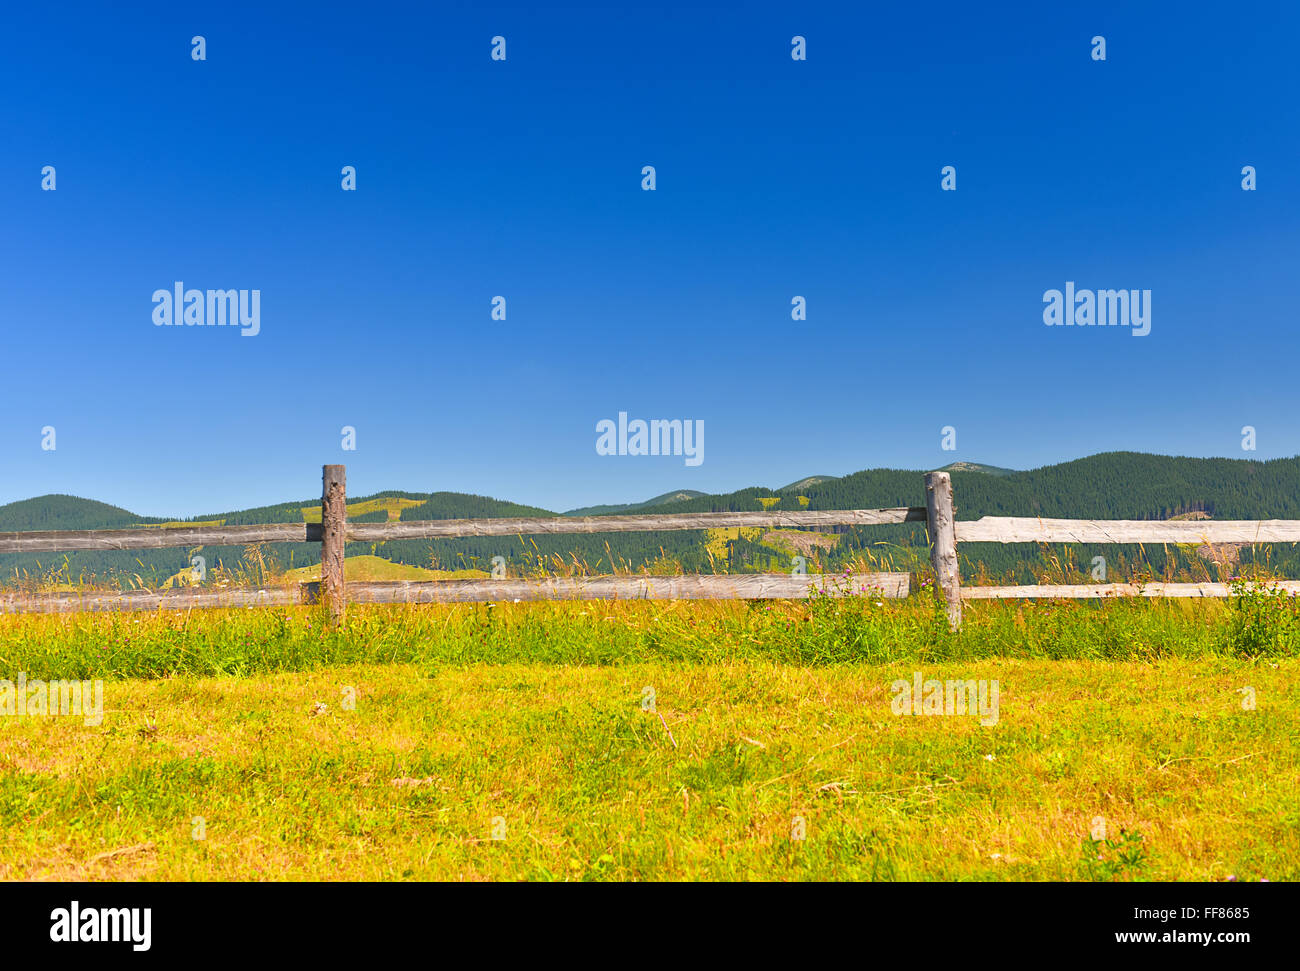 Alpine pasture farming in summer mountains. - Stock Image